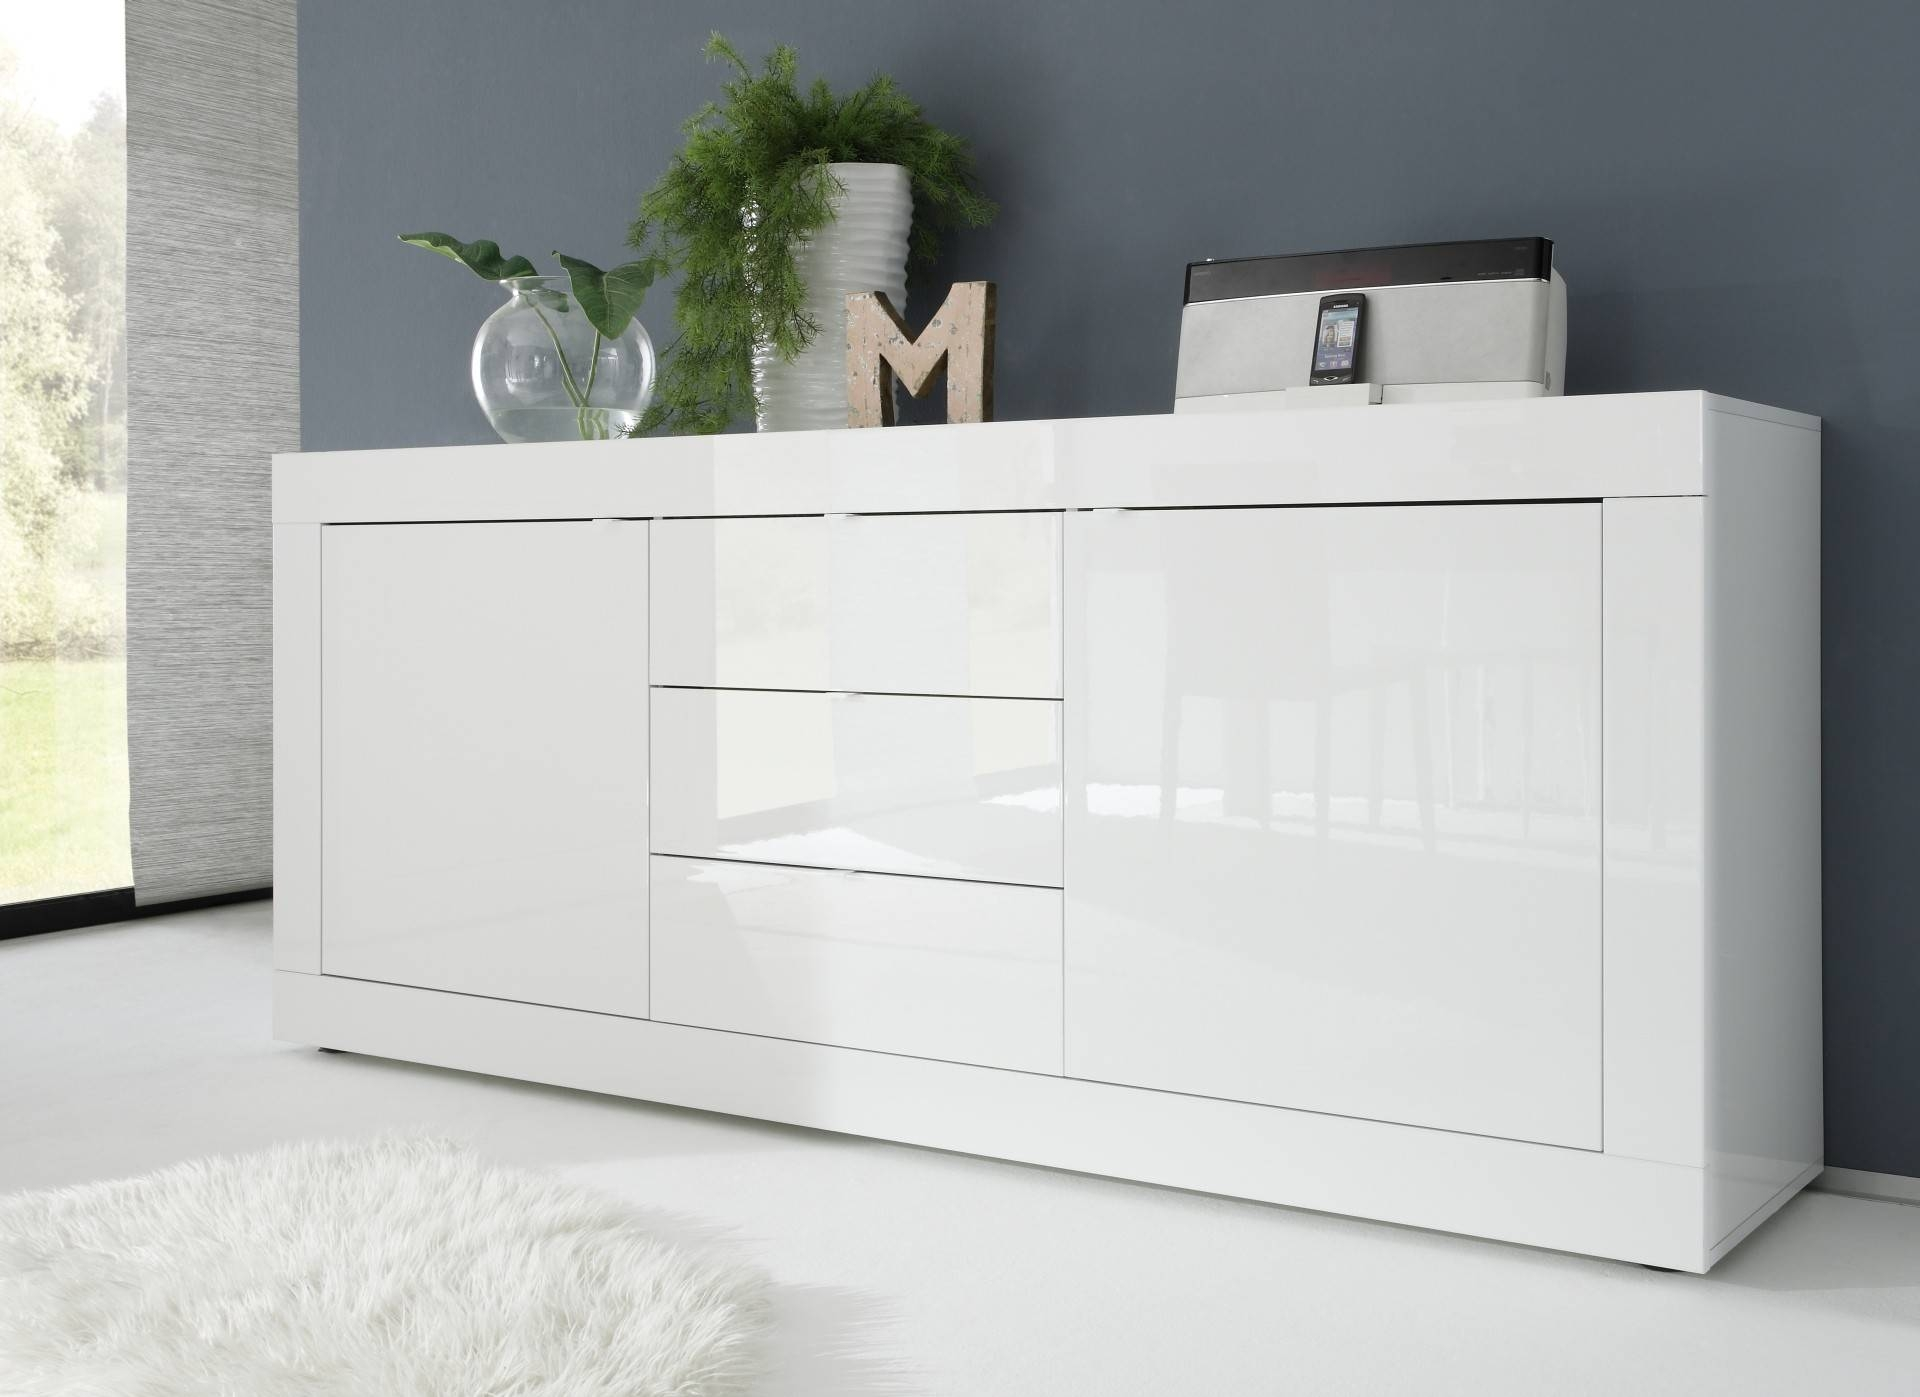 Popular Photo of White Gloss Sideboards